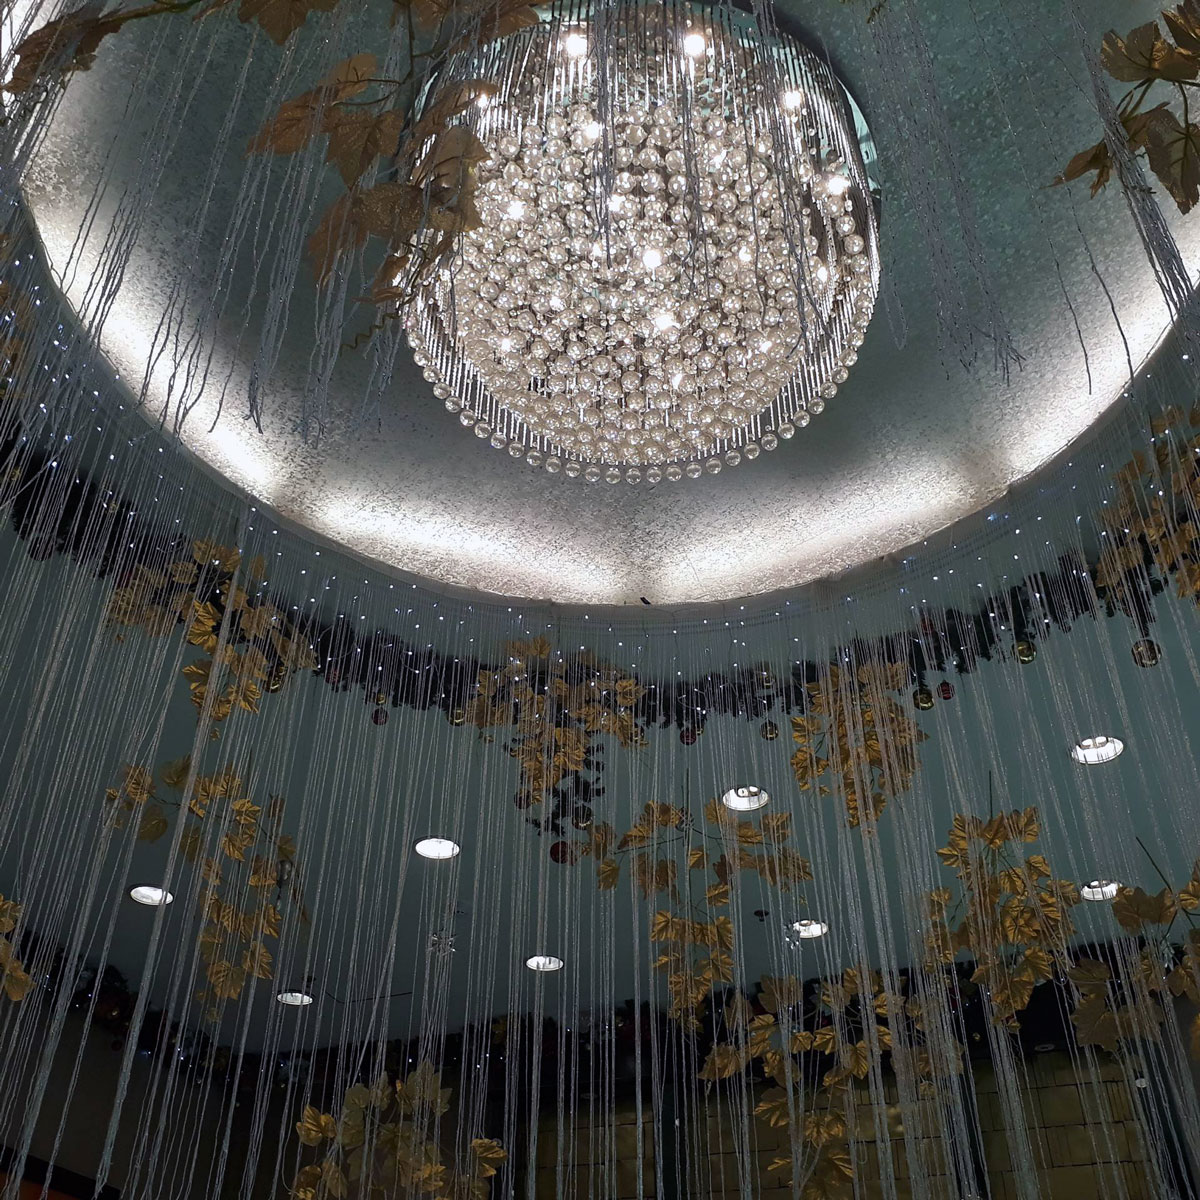 Grand chandelier naga city guide the concourse convention center grand chandelier aloadofball Gallery